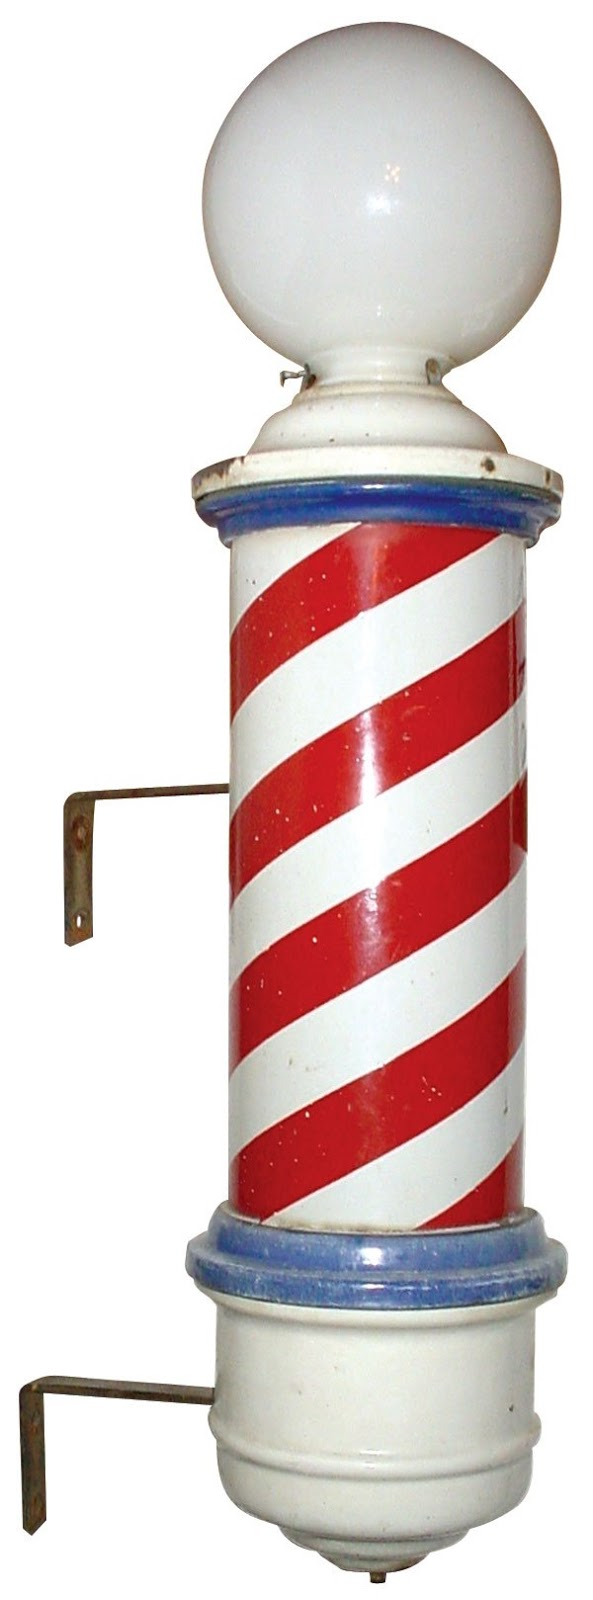 Antique barber shop sign - Antique Barber Poles